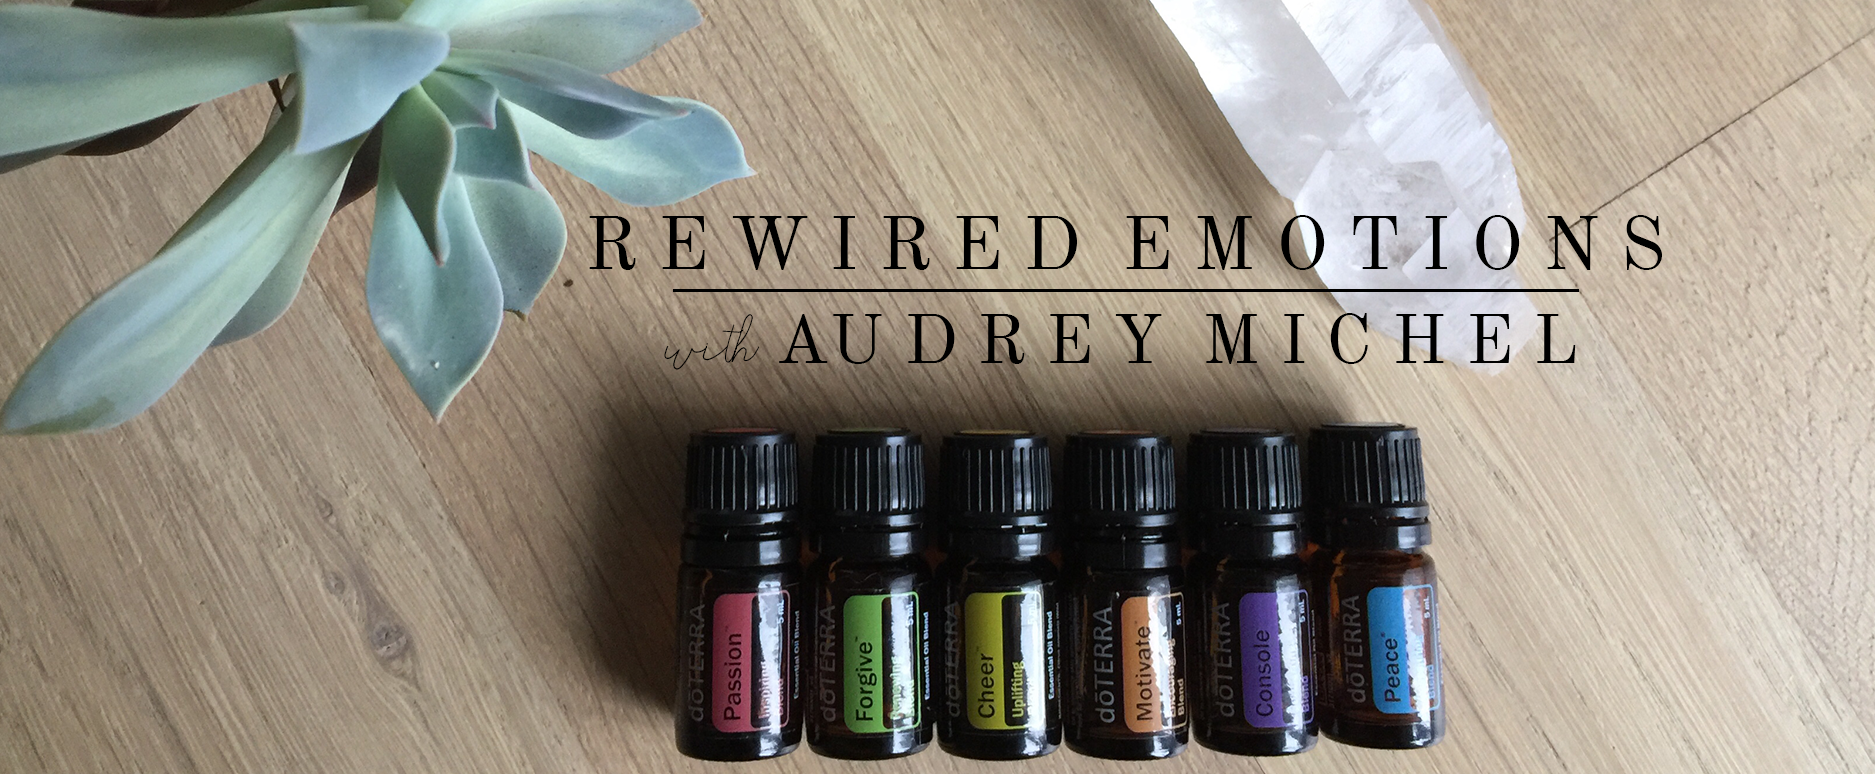 Rewire Your Emotions with Essential Oils. Audrey Michel of Rewired Life